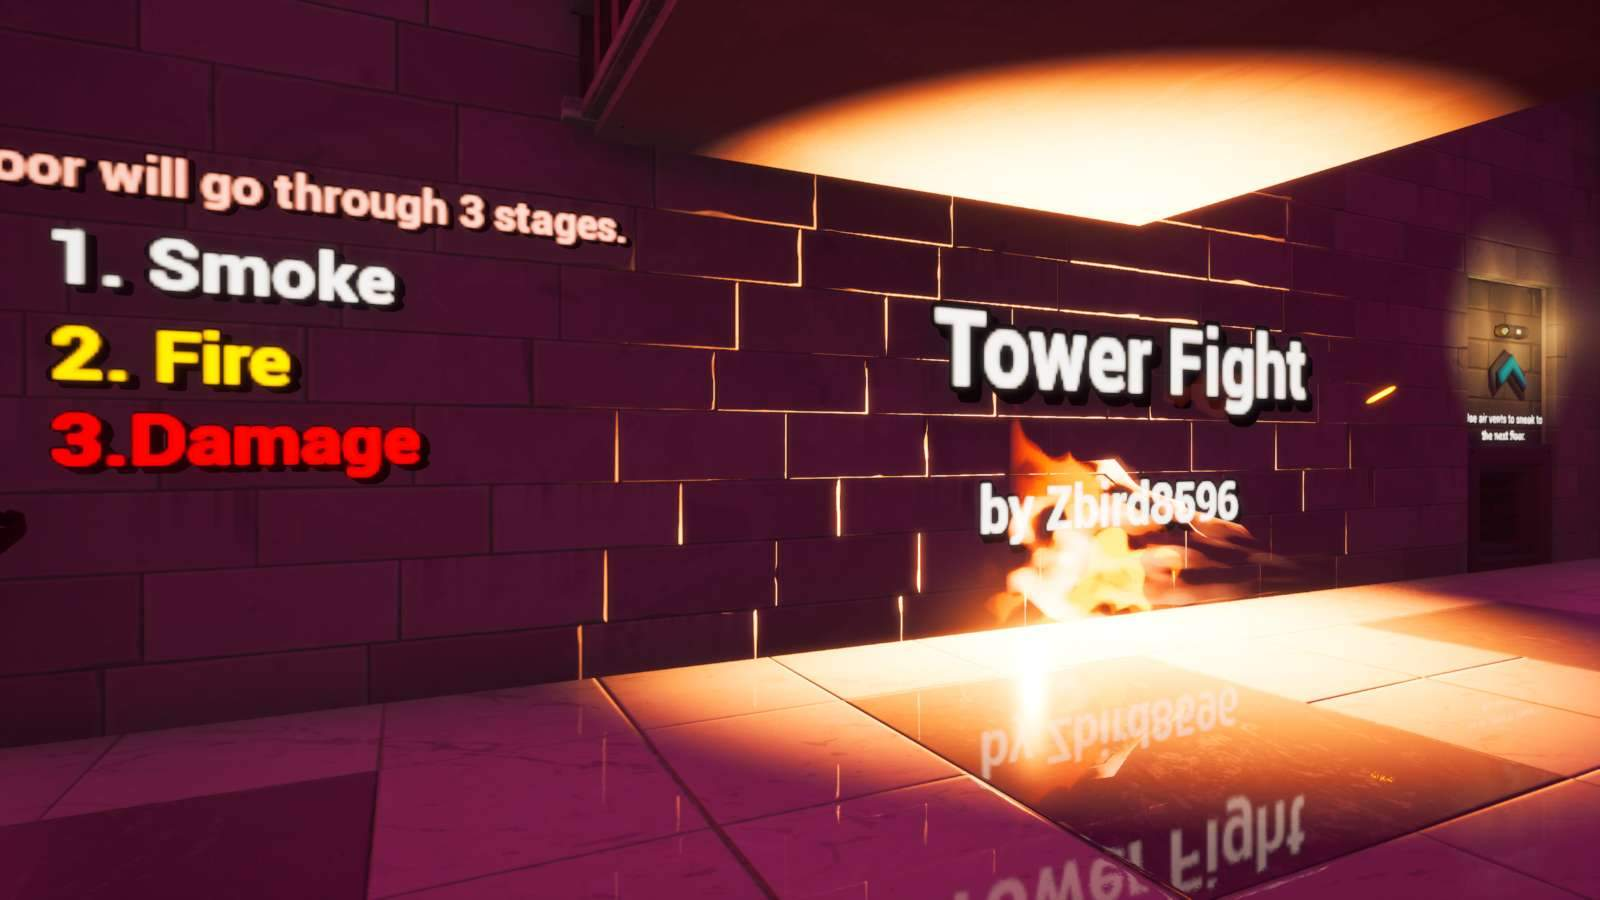 Tower Fight